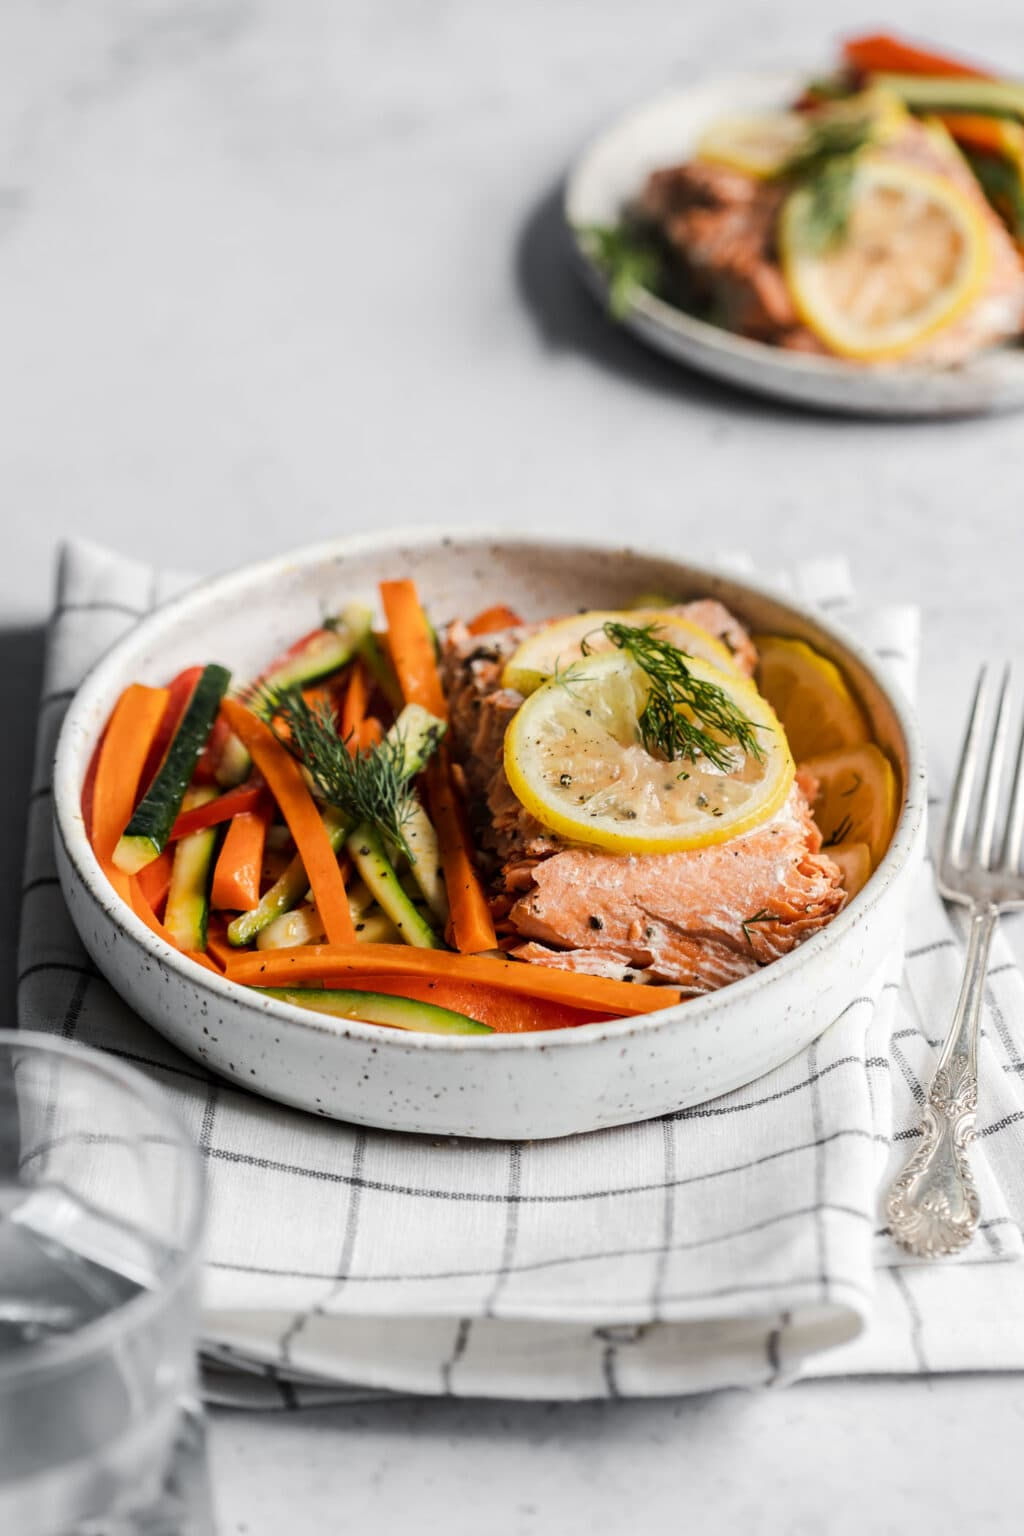 A plate of salmon and veggies on top of a dish towel and gray background.